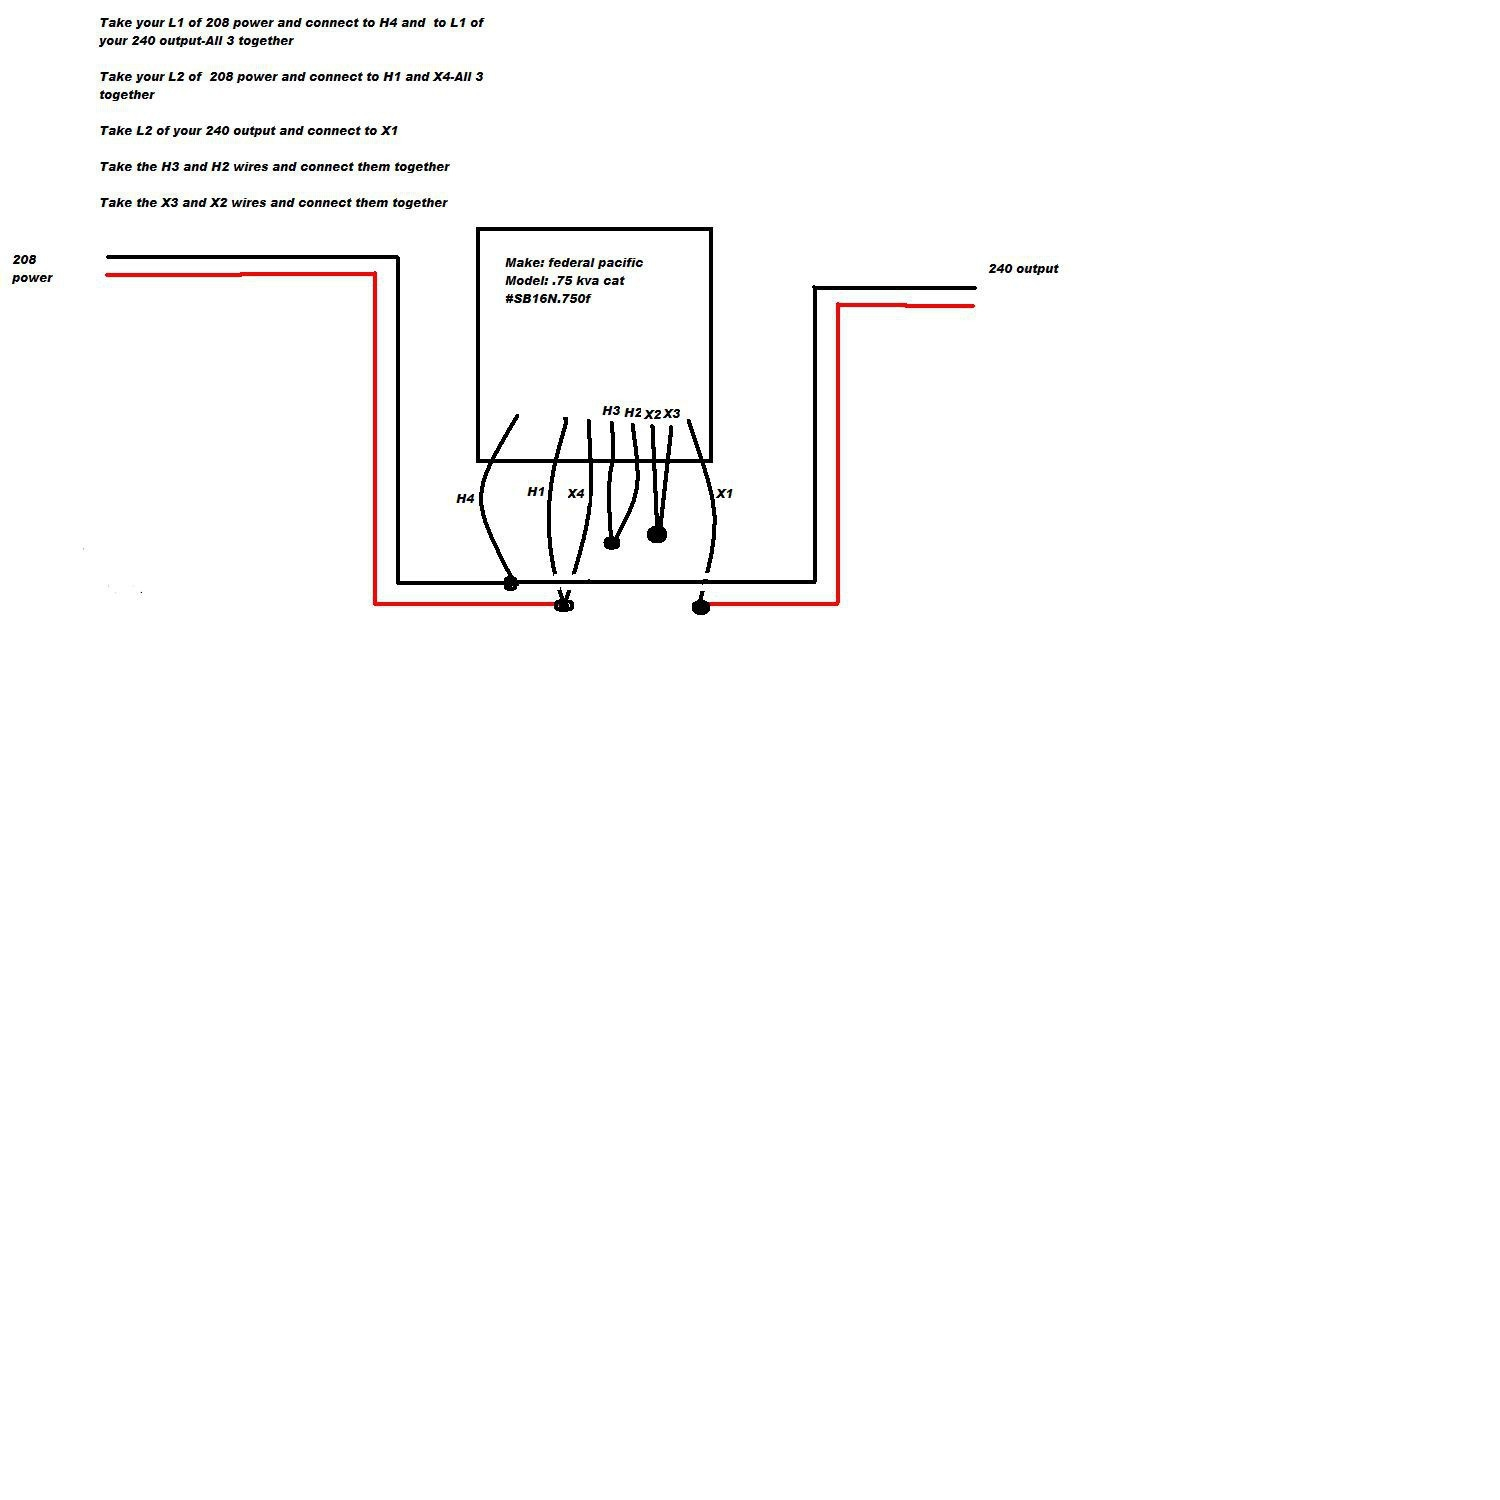 federal pacific buck boost transformer wiring diagram Collection-acme buck boost transformer wiring diagram free s awesome rh uptuto Buck Booster 220 to 15-p